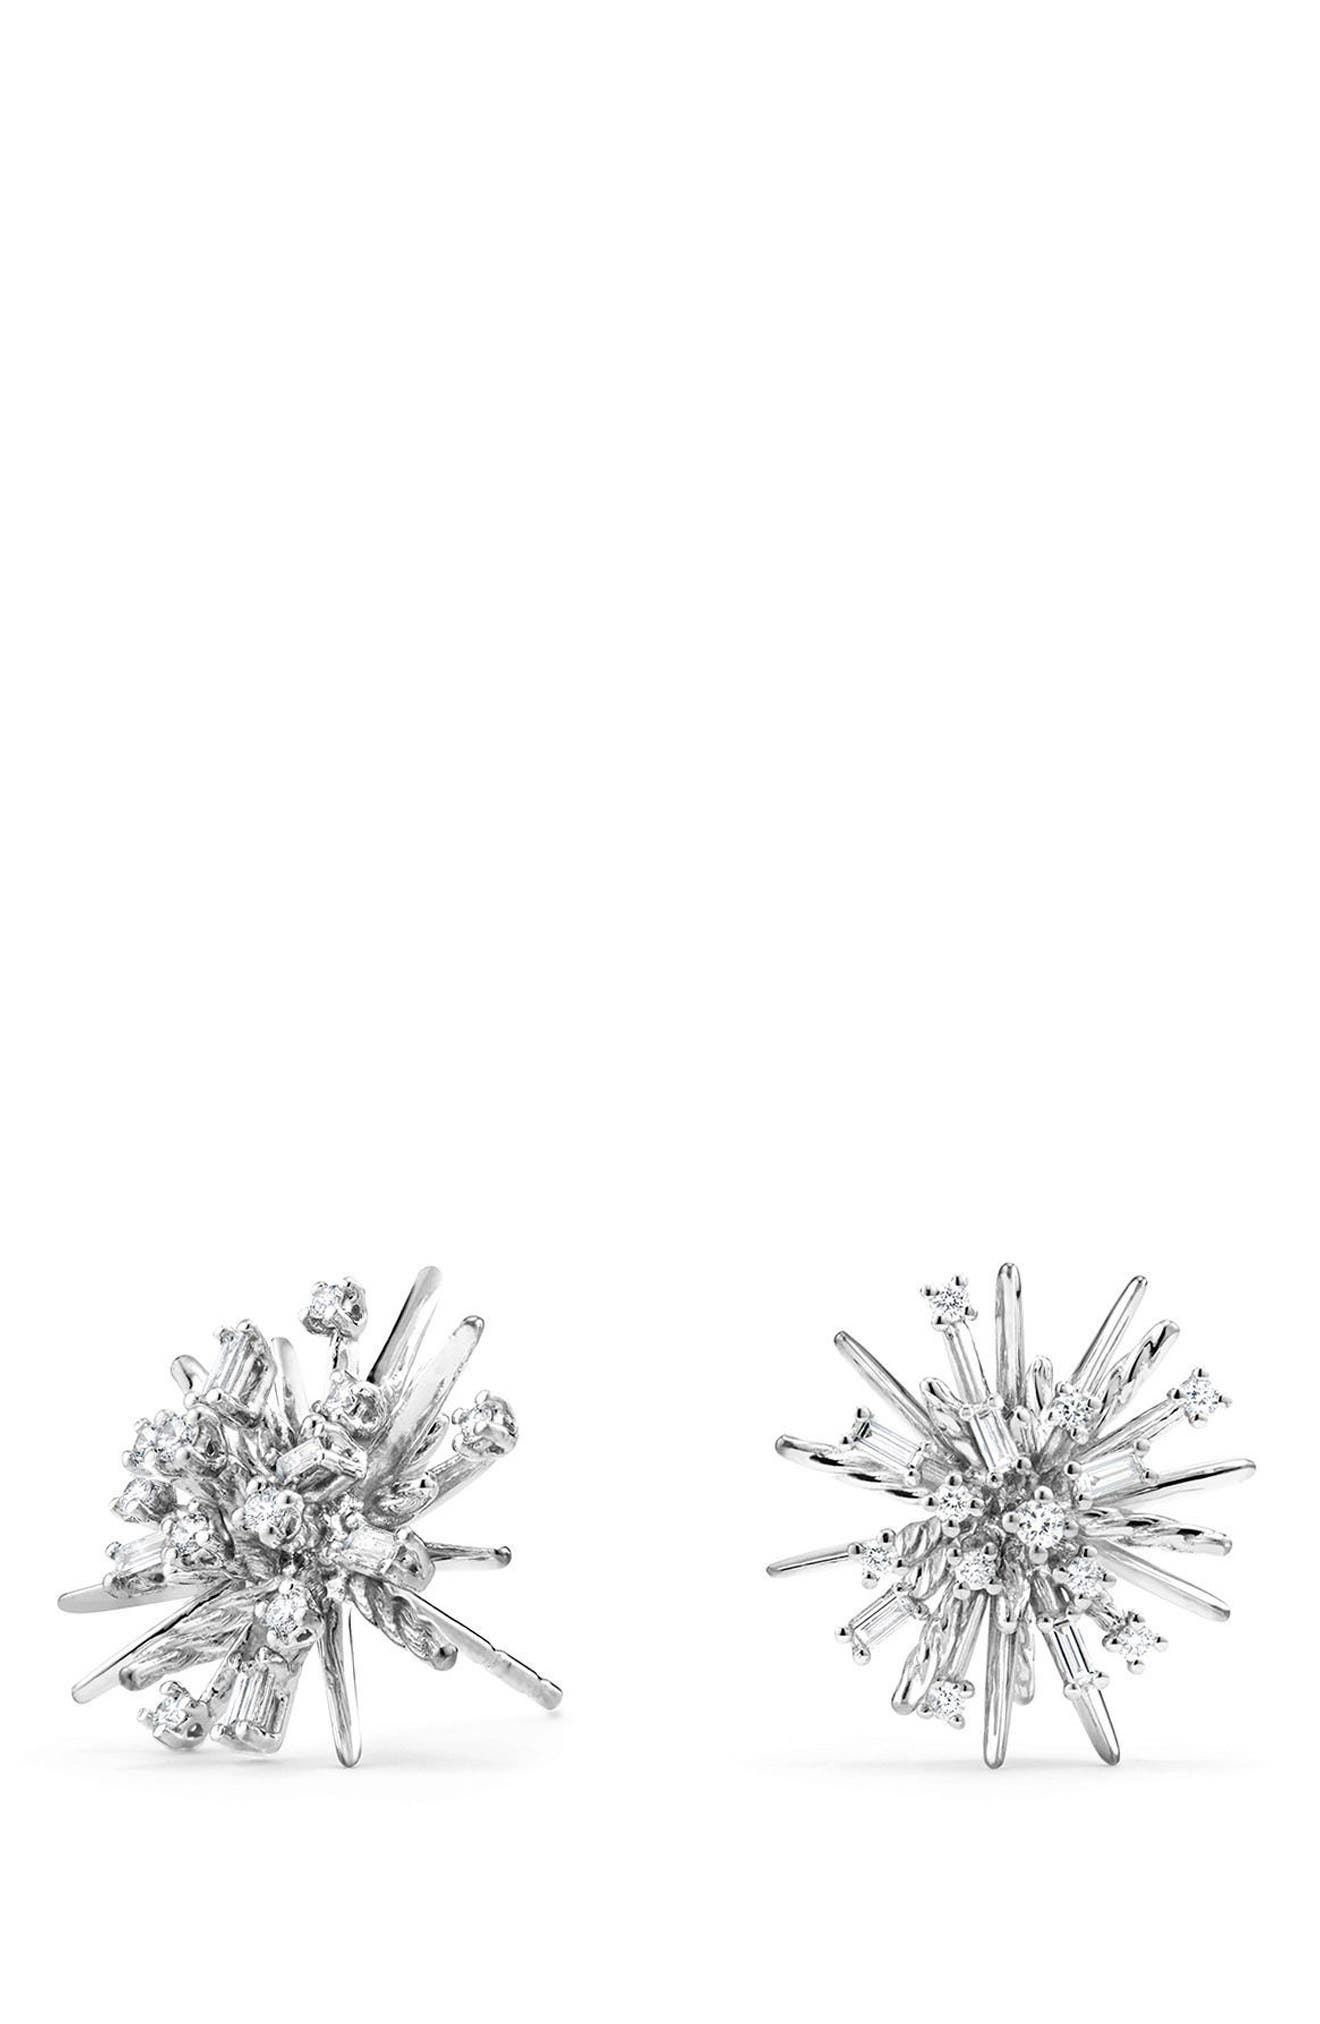 Alternate Image 1 Selected - David Yurman Supernova Stud Earrings with Diamonds in 18K White Gold